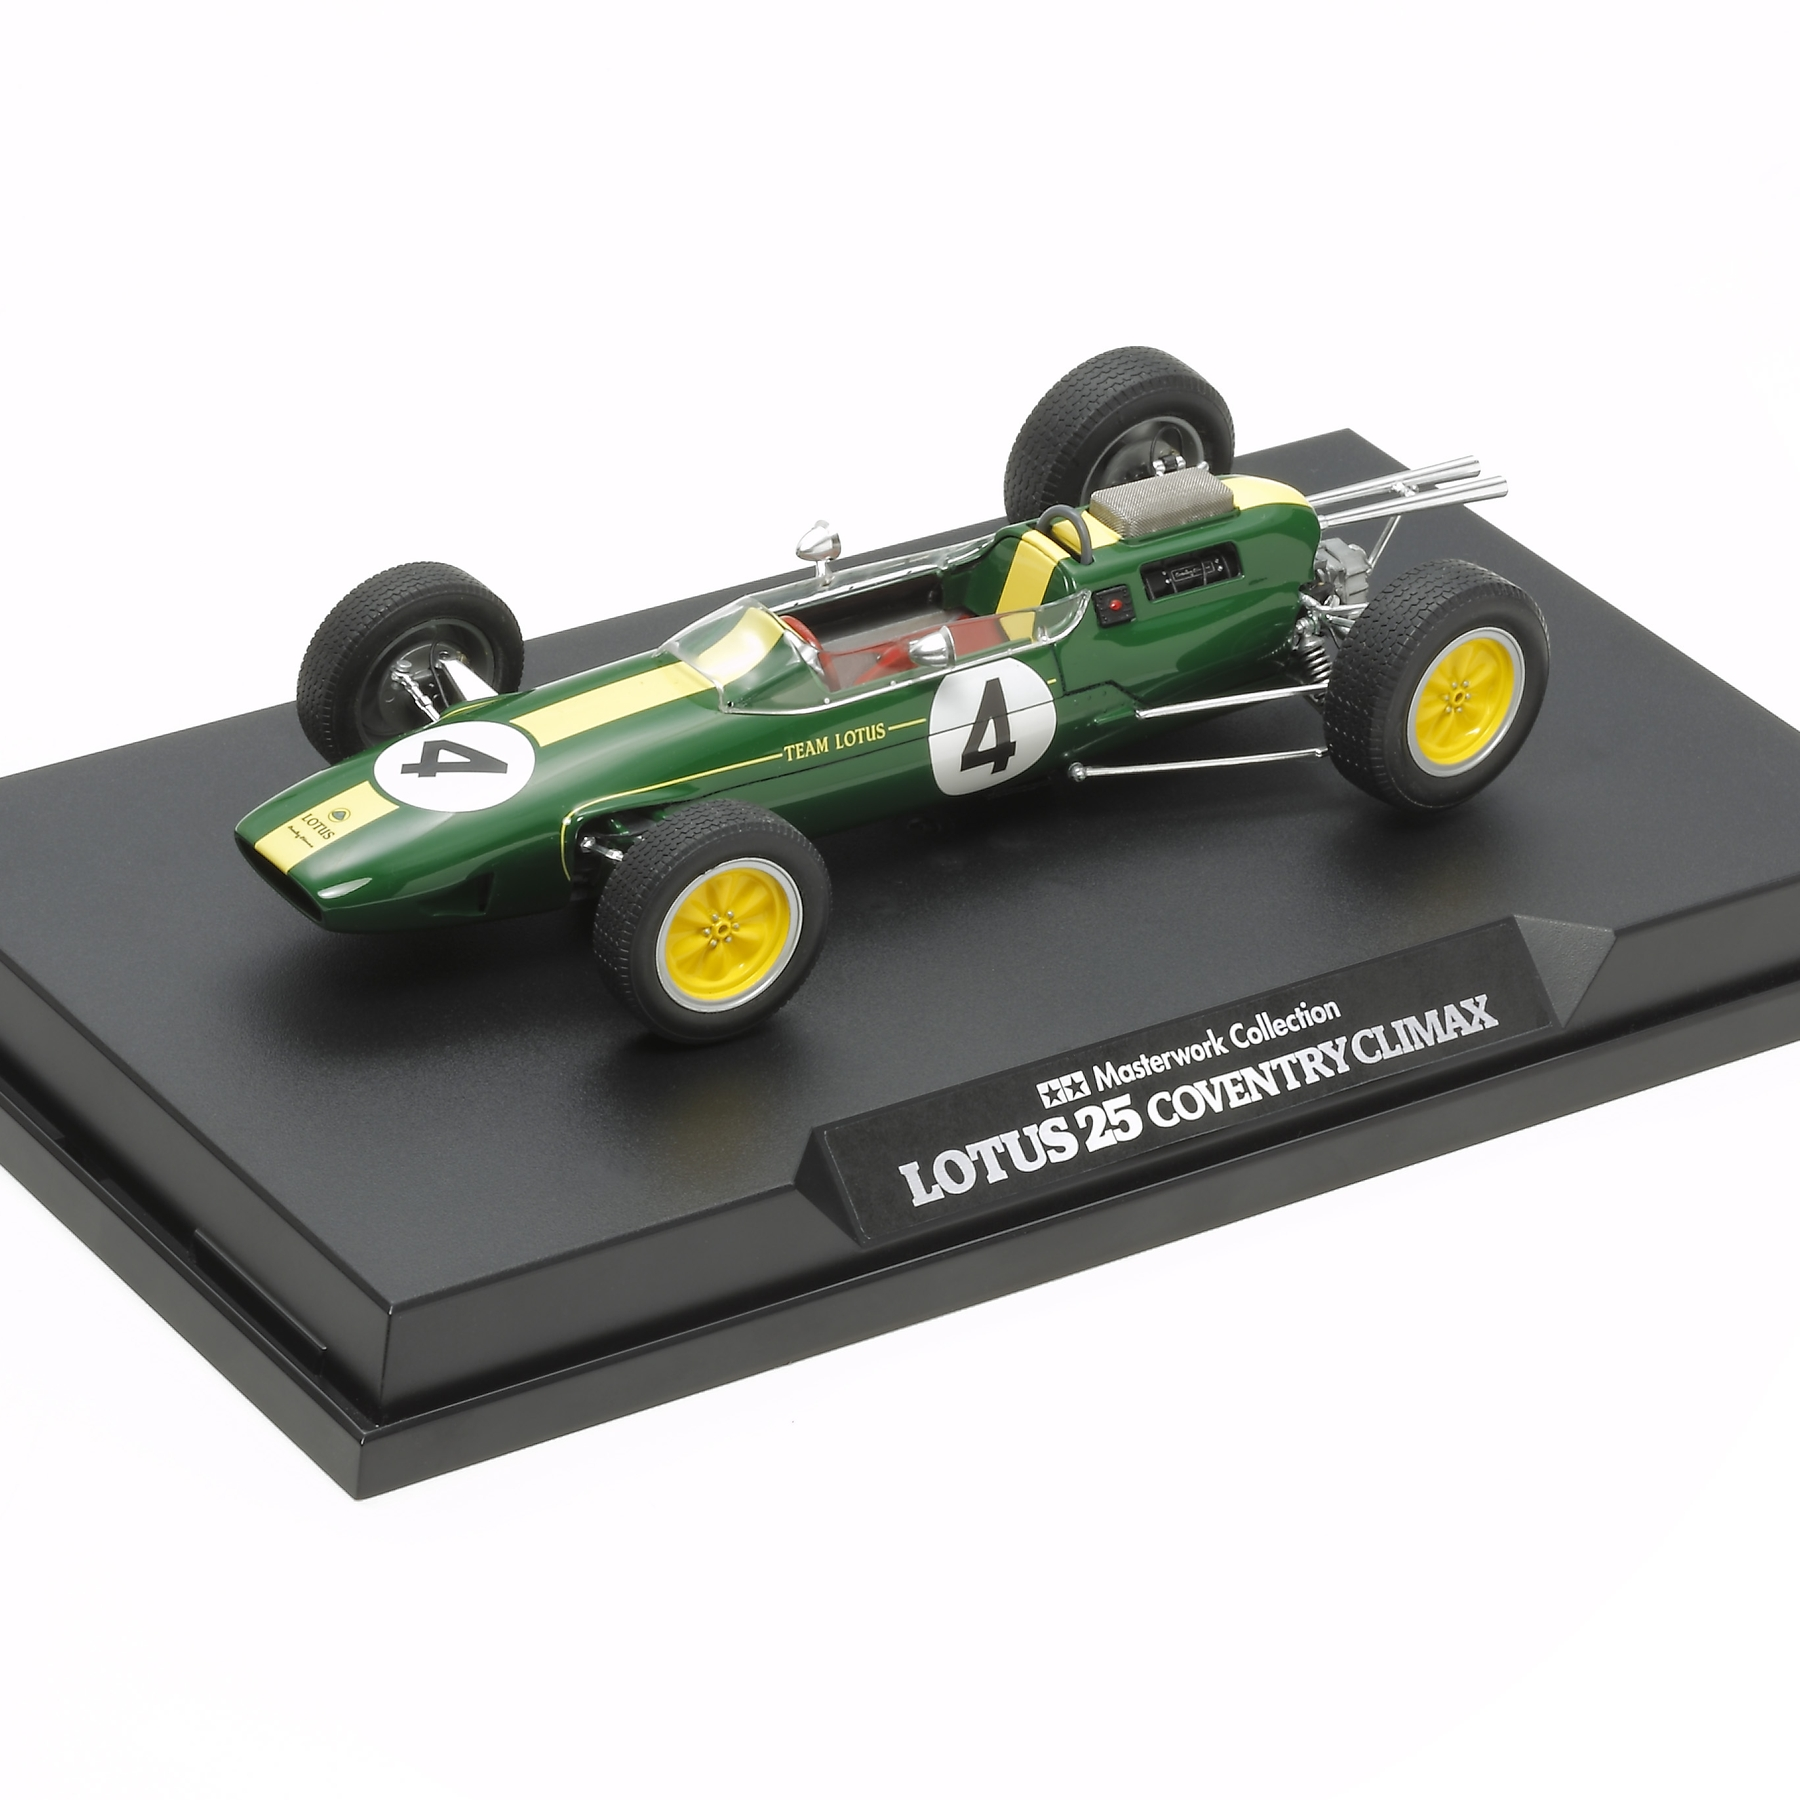 Lotus 25 Coventry Climax No.4